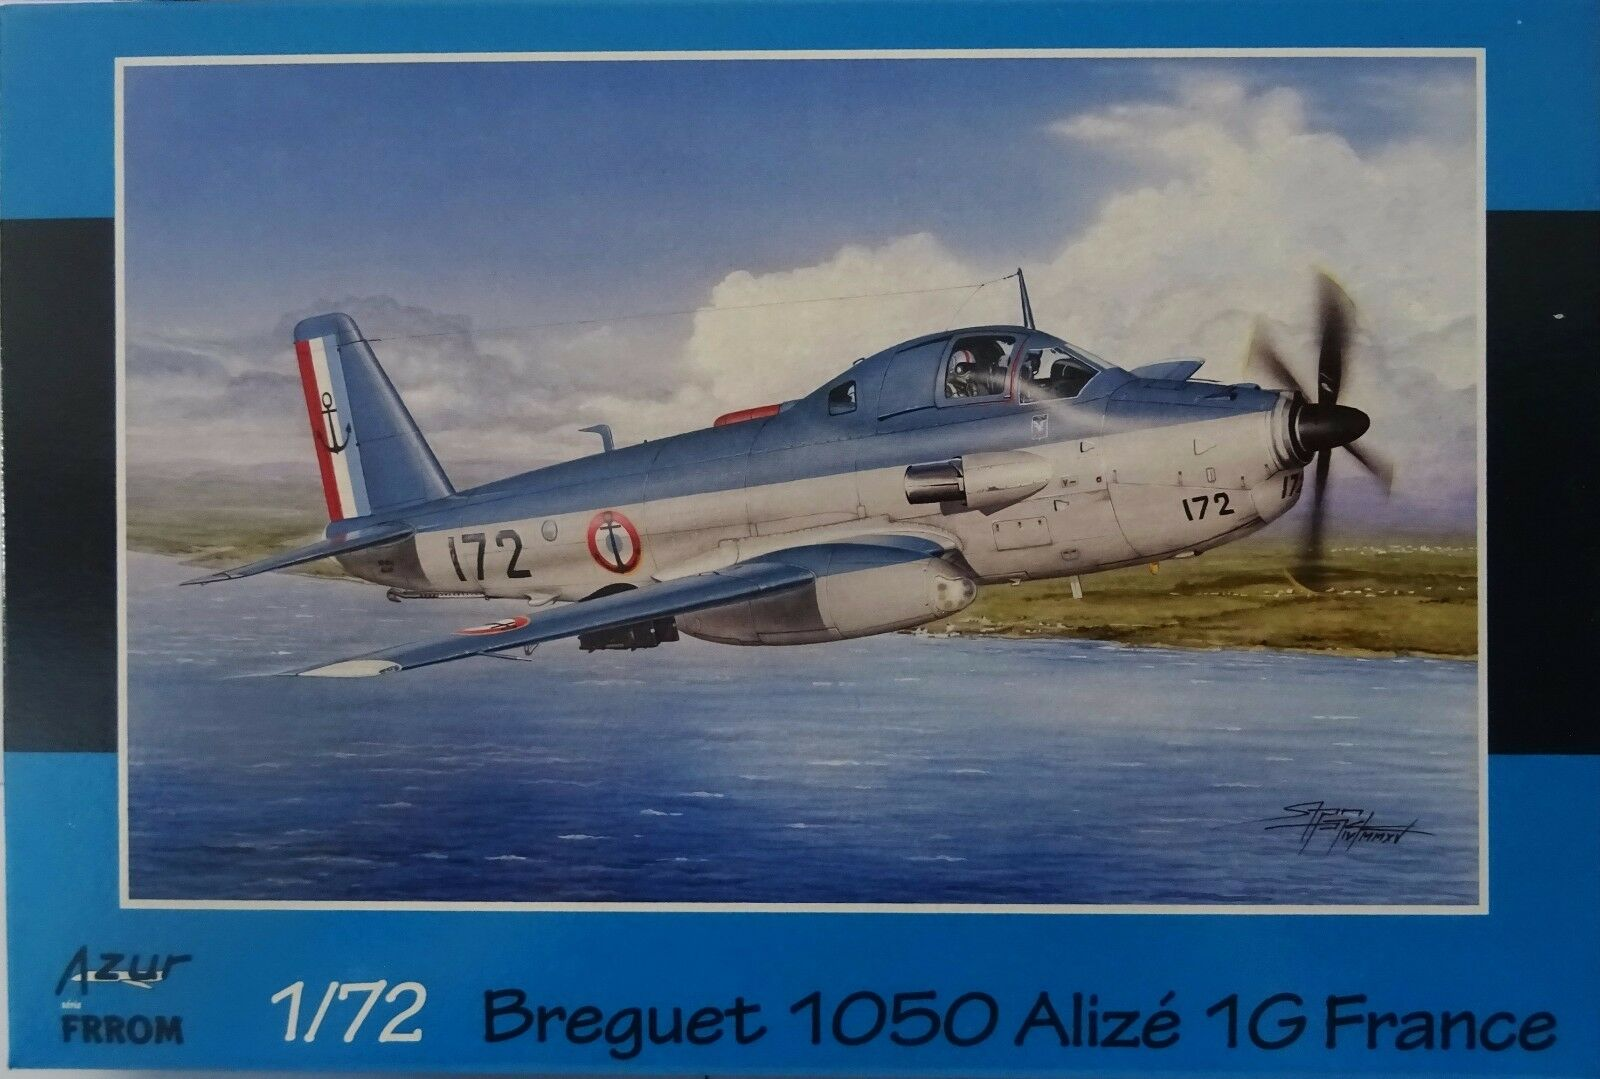 Breguet 1050 Tradewind 1G France, Limited Edition, Azur   Fromm, 1 72, Plastic,